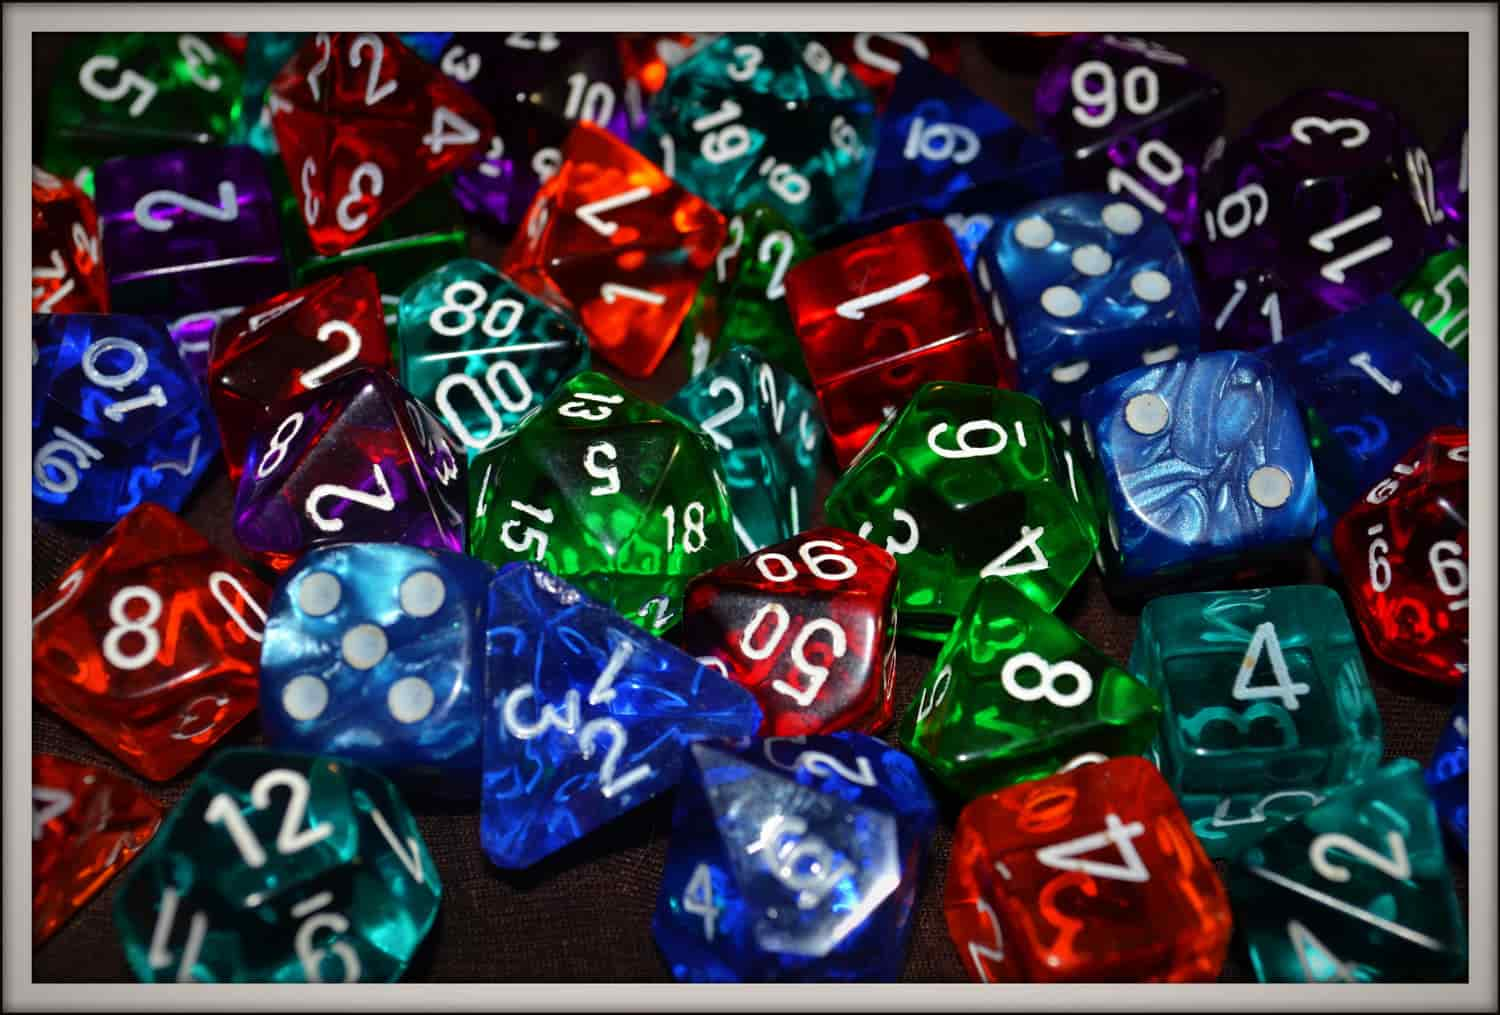 Dungeons and Dragons is a popular role-playing fantasy game